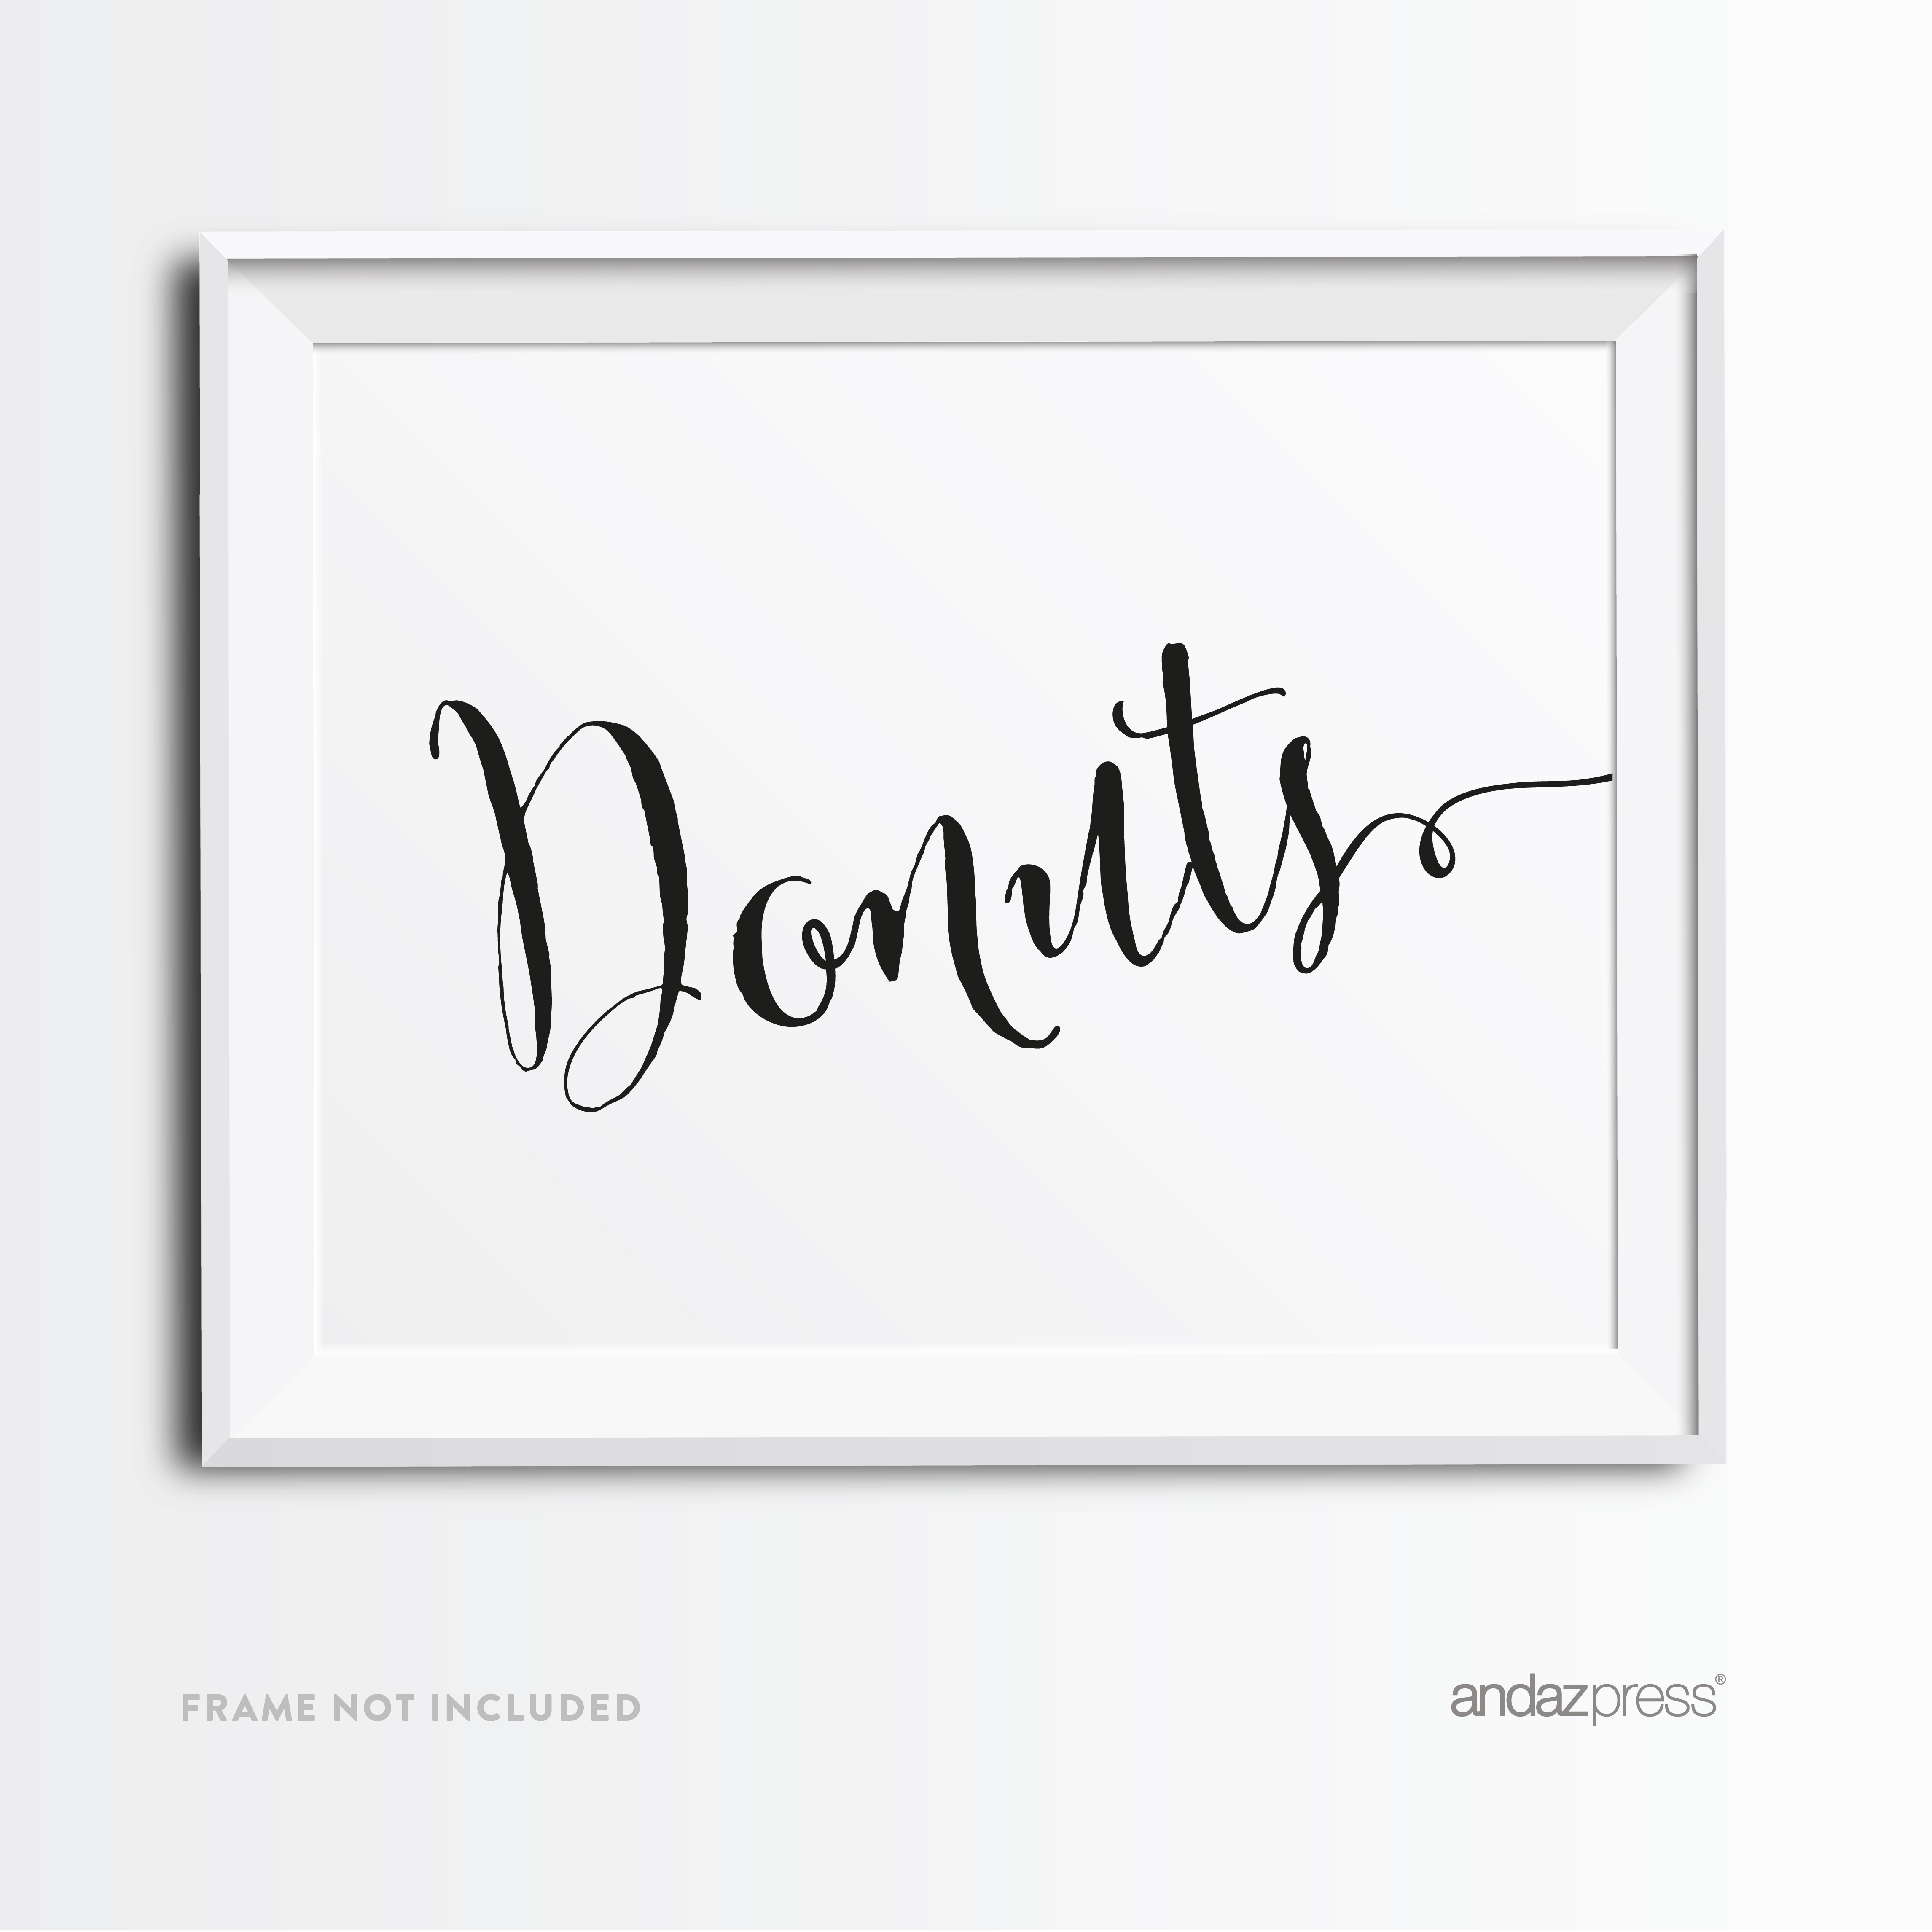 Donuts Formal Black & White Wedding Party Signs